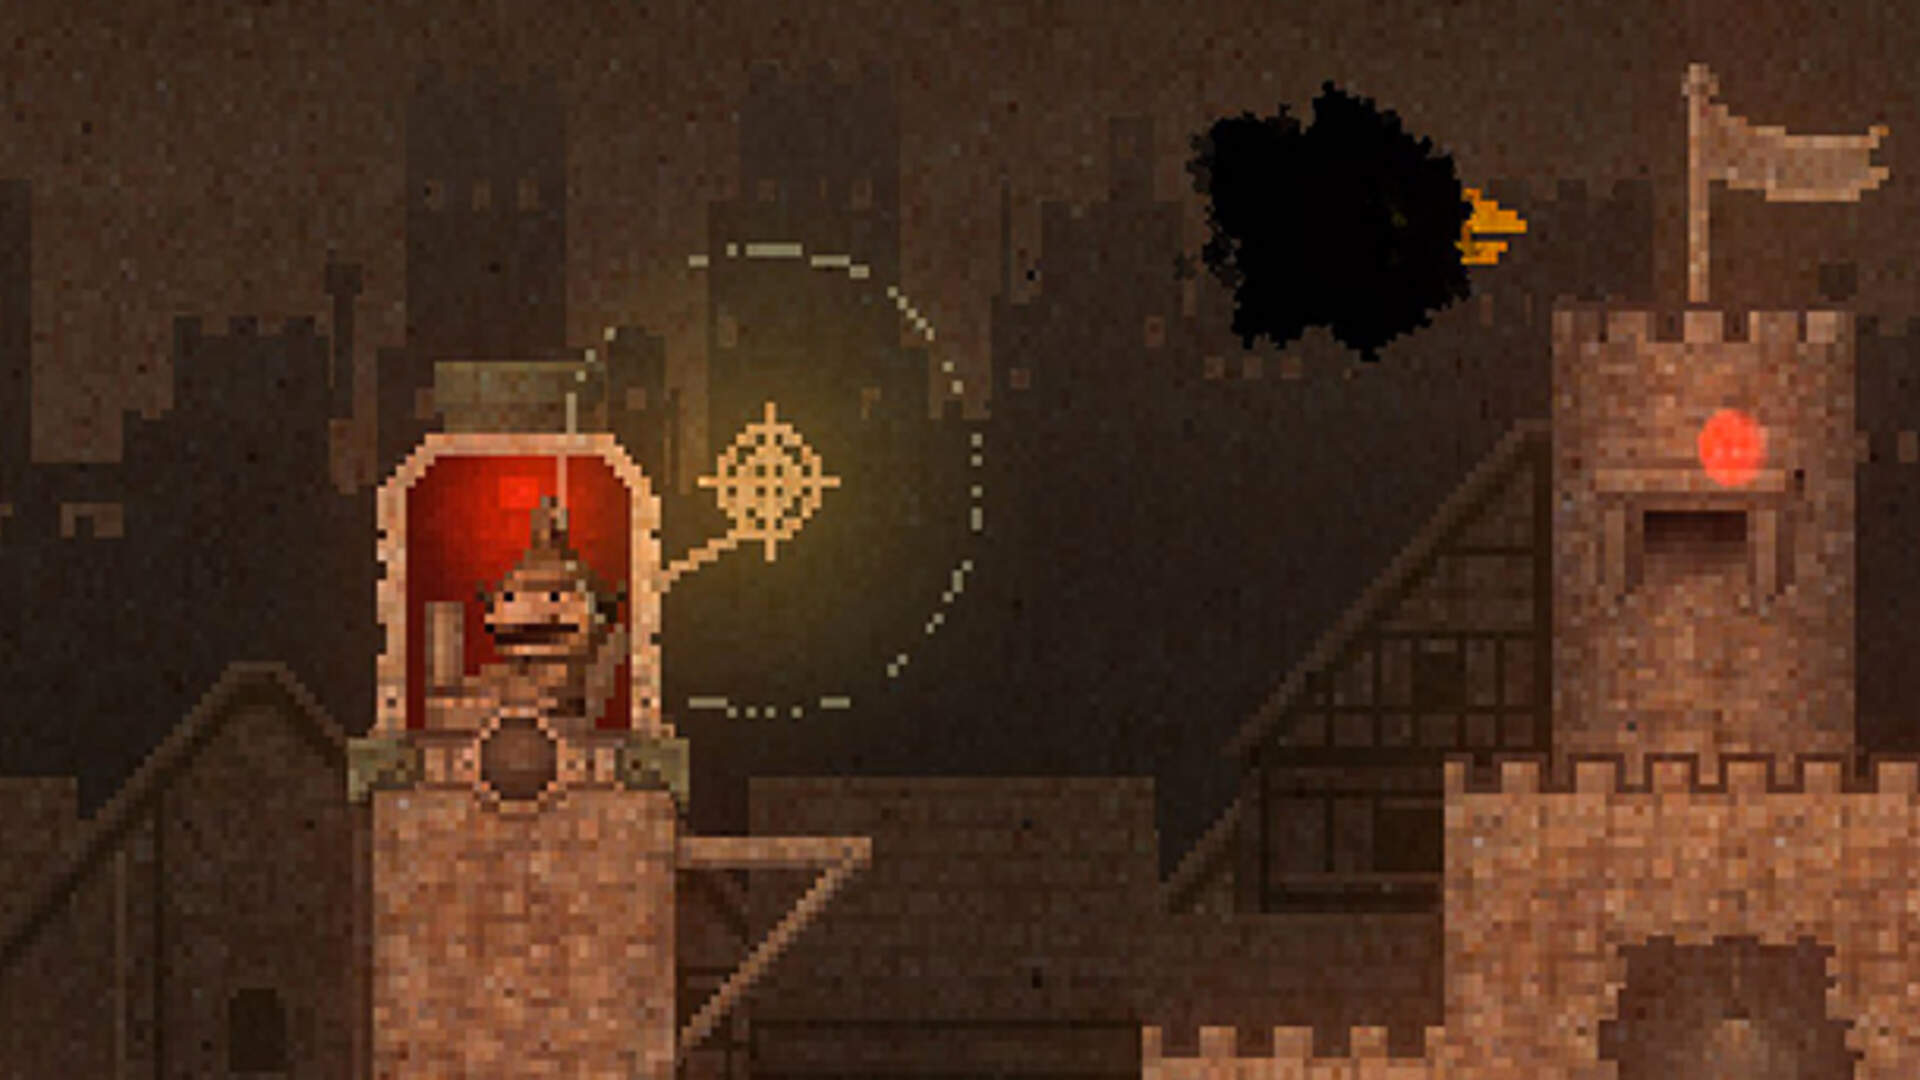 Black Bird Sees a Quirky Creator Bring His Unique Touch to One of Gaming's Oldest Genres